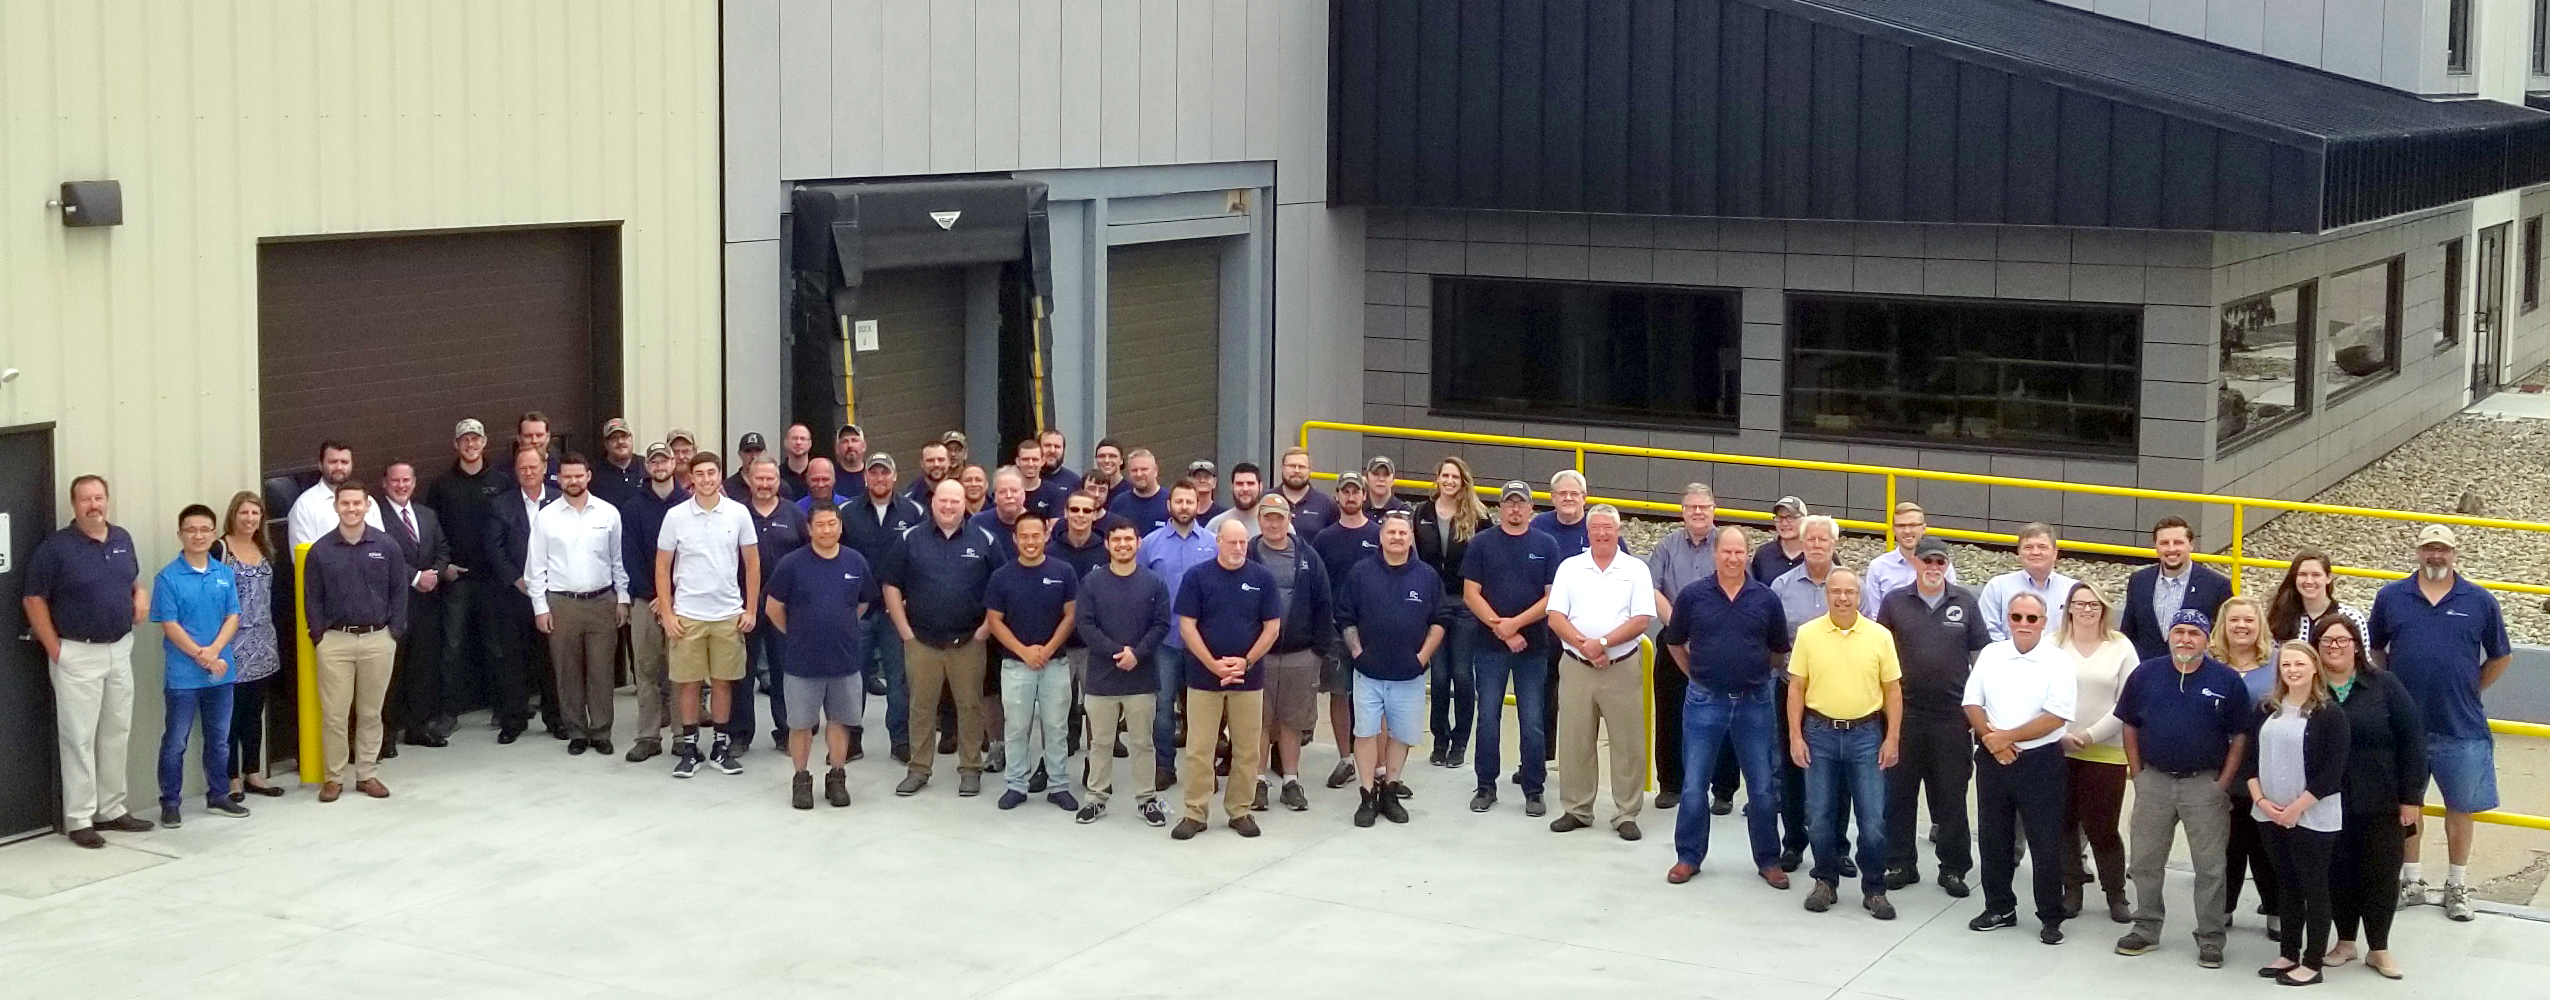 Fluid Chillers Company Photo 2019